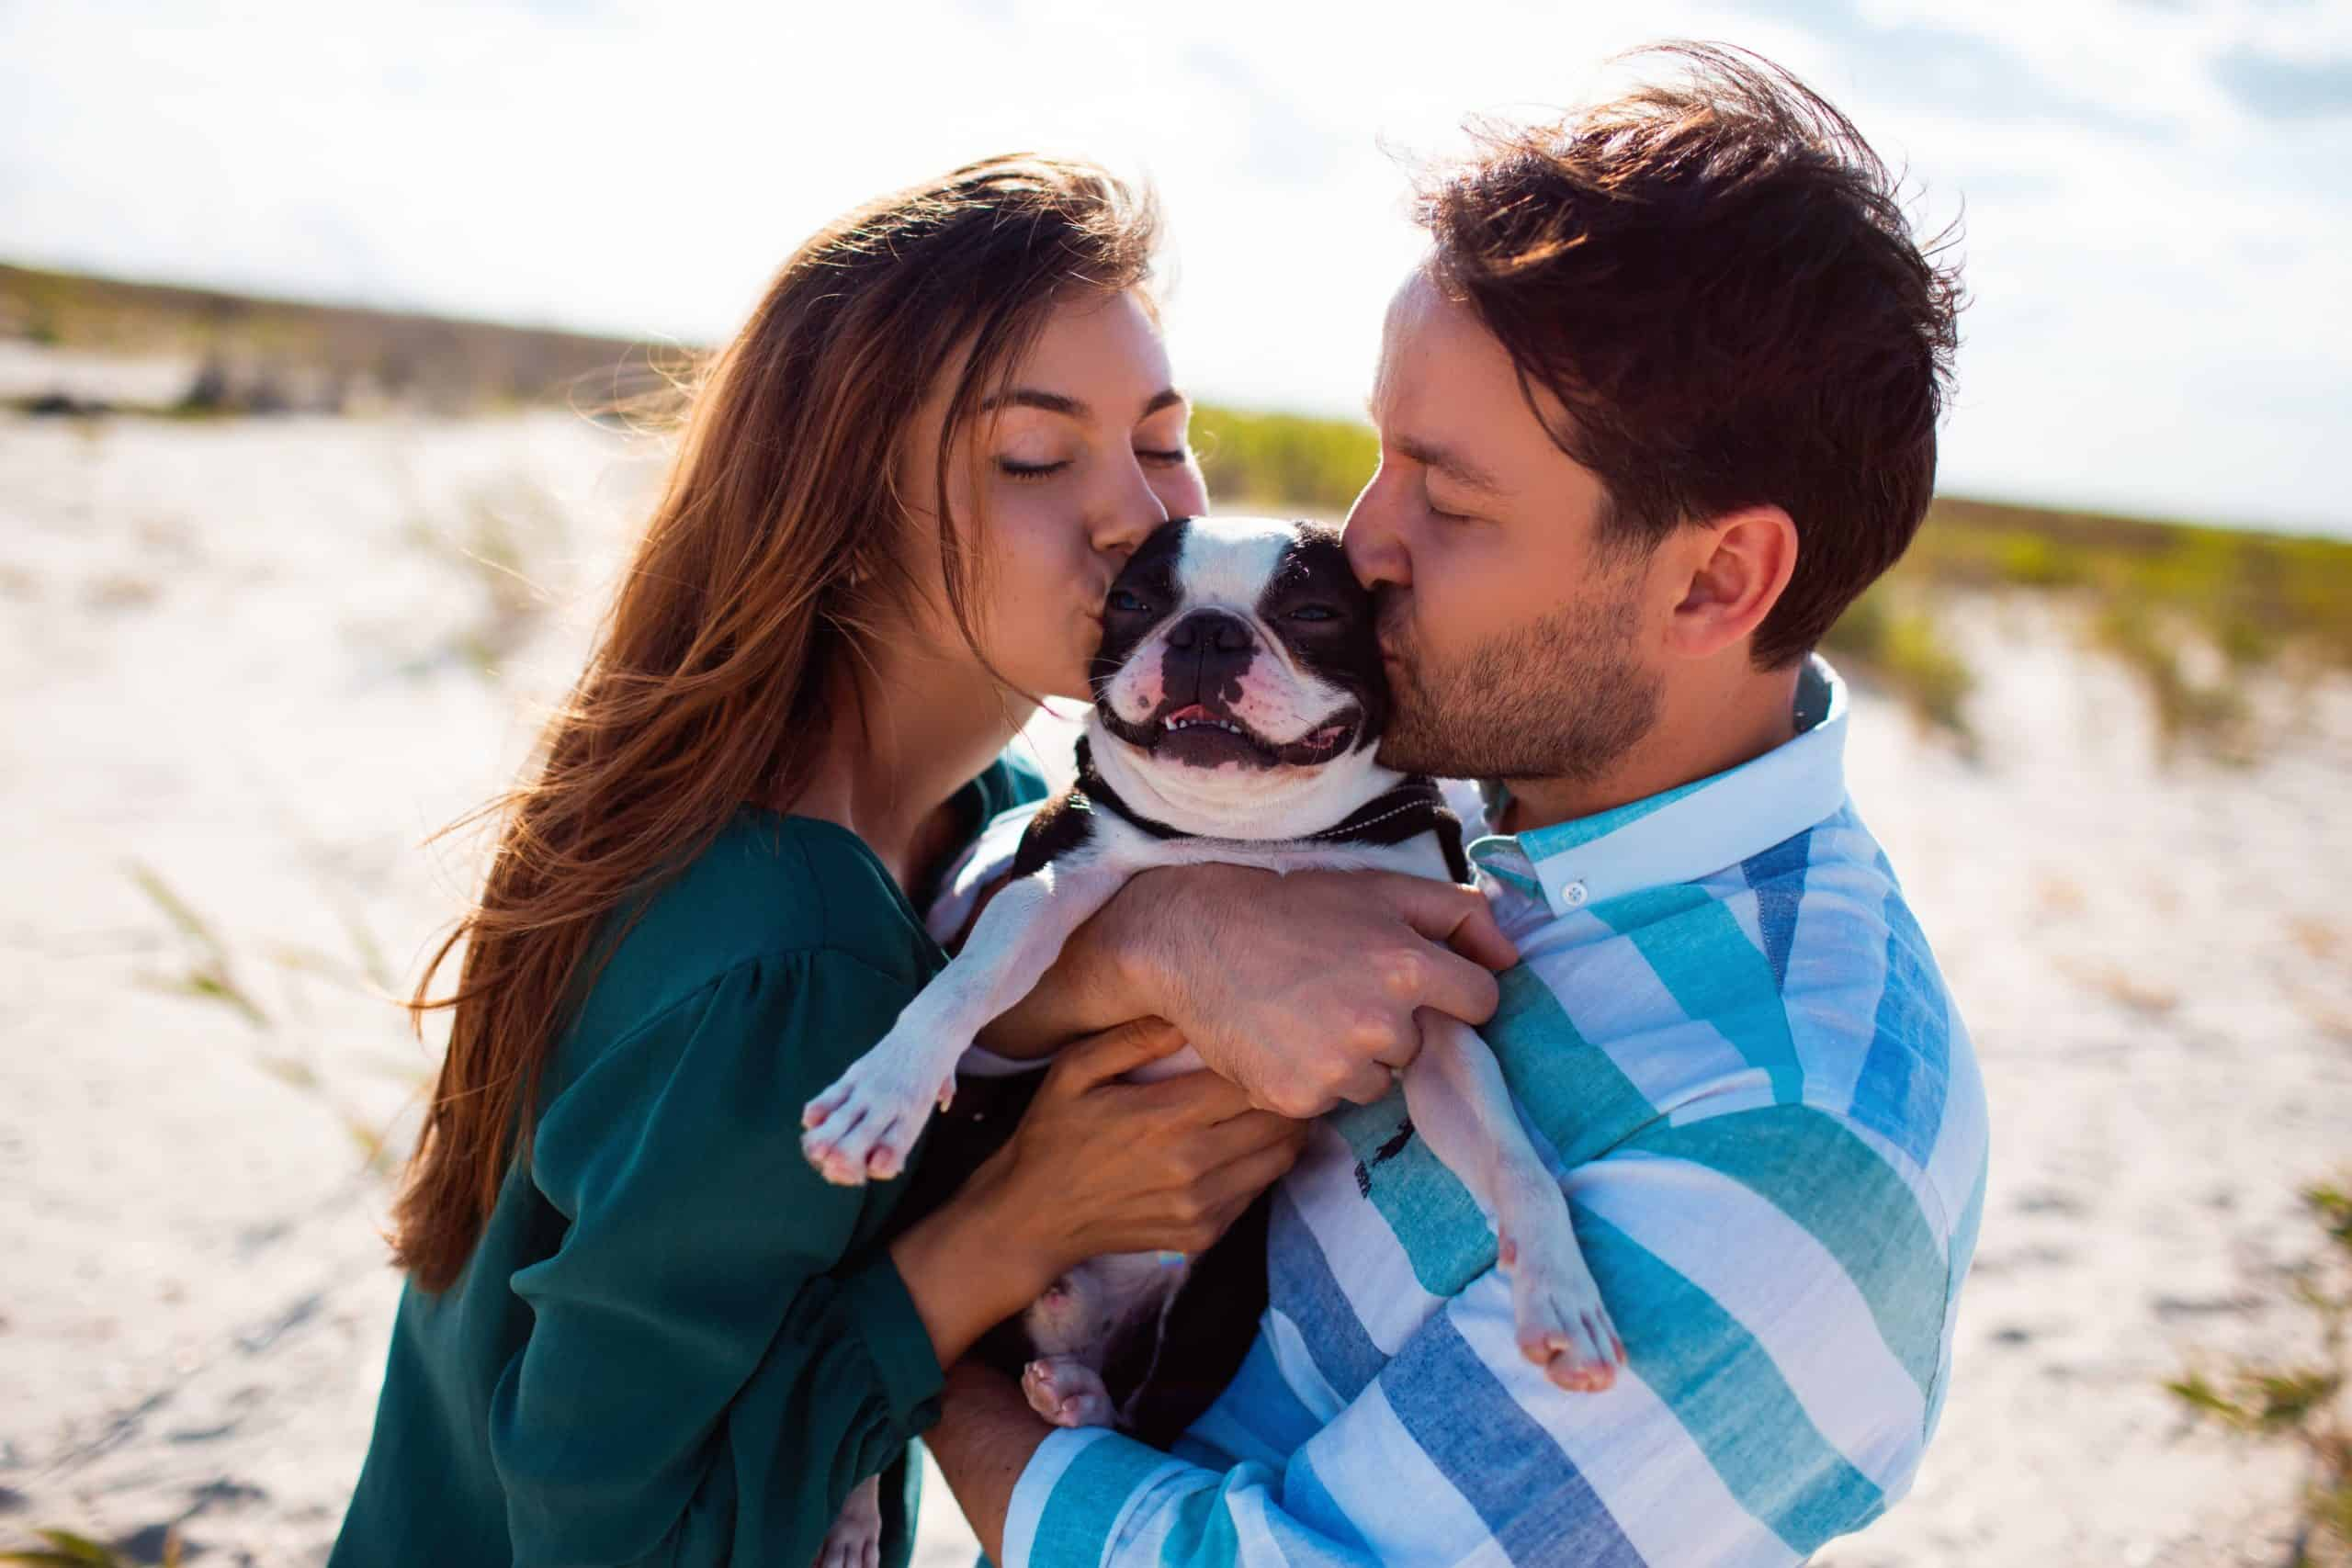 Couple kisses their French bulldog while having a picnic on the beach. Movie dogs play cupid and help create romance in movies including Turner & Hooch, 101 Dalmatians, A Dog's Purpose, and Marley & Me.